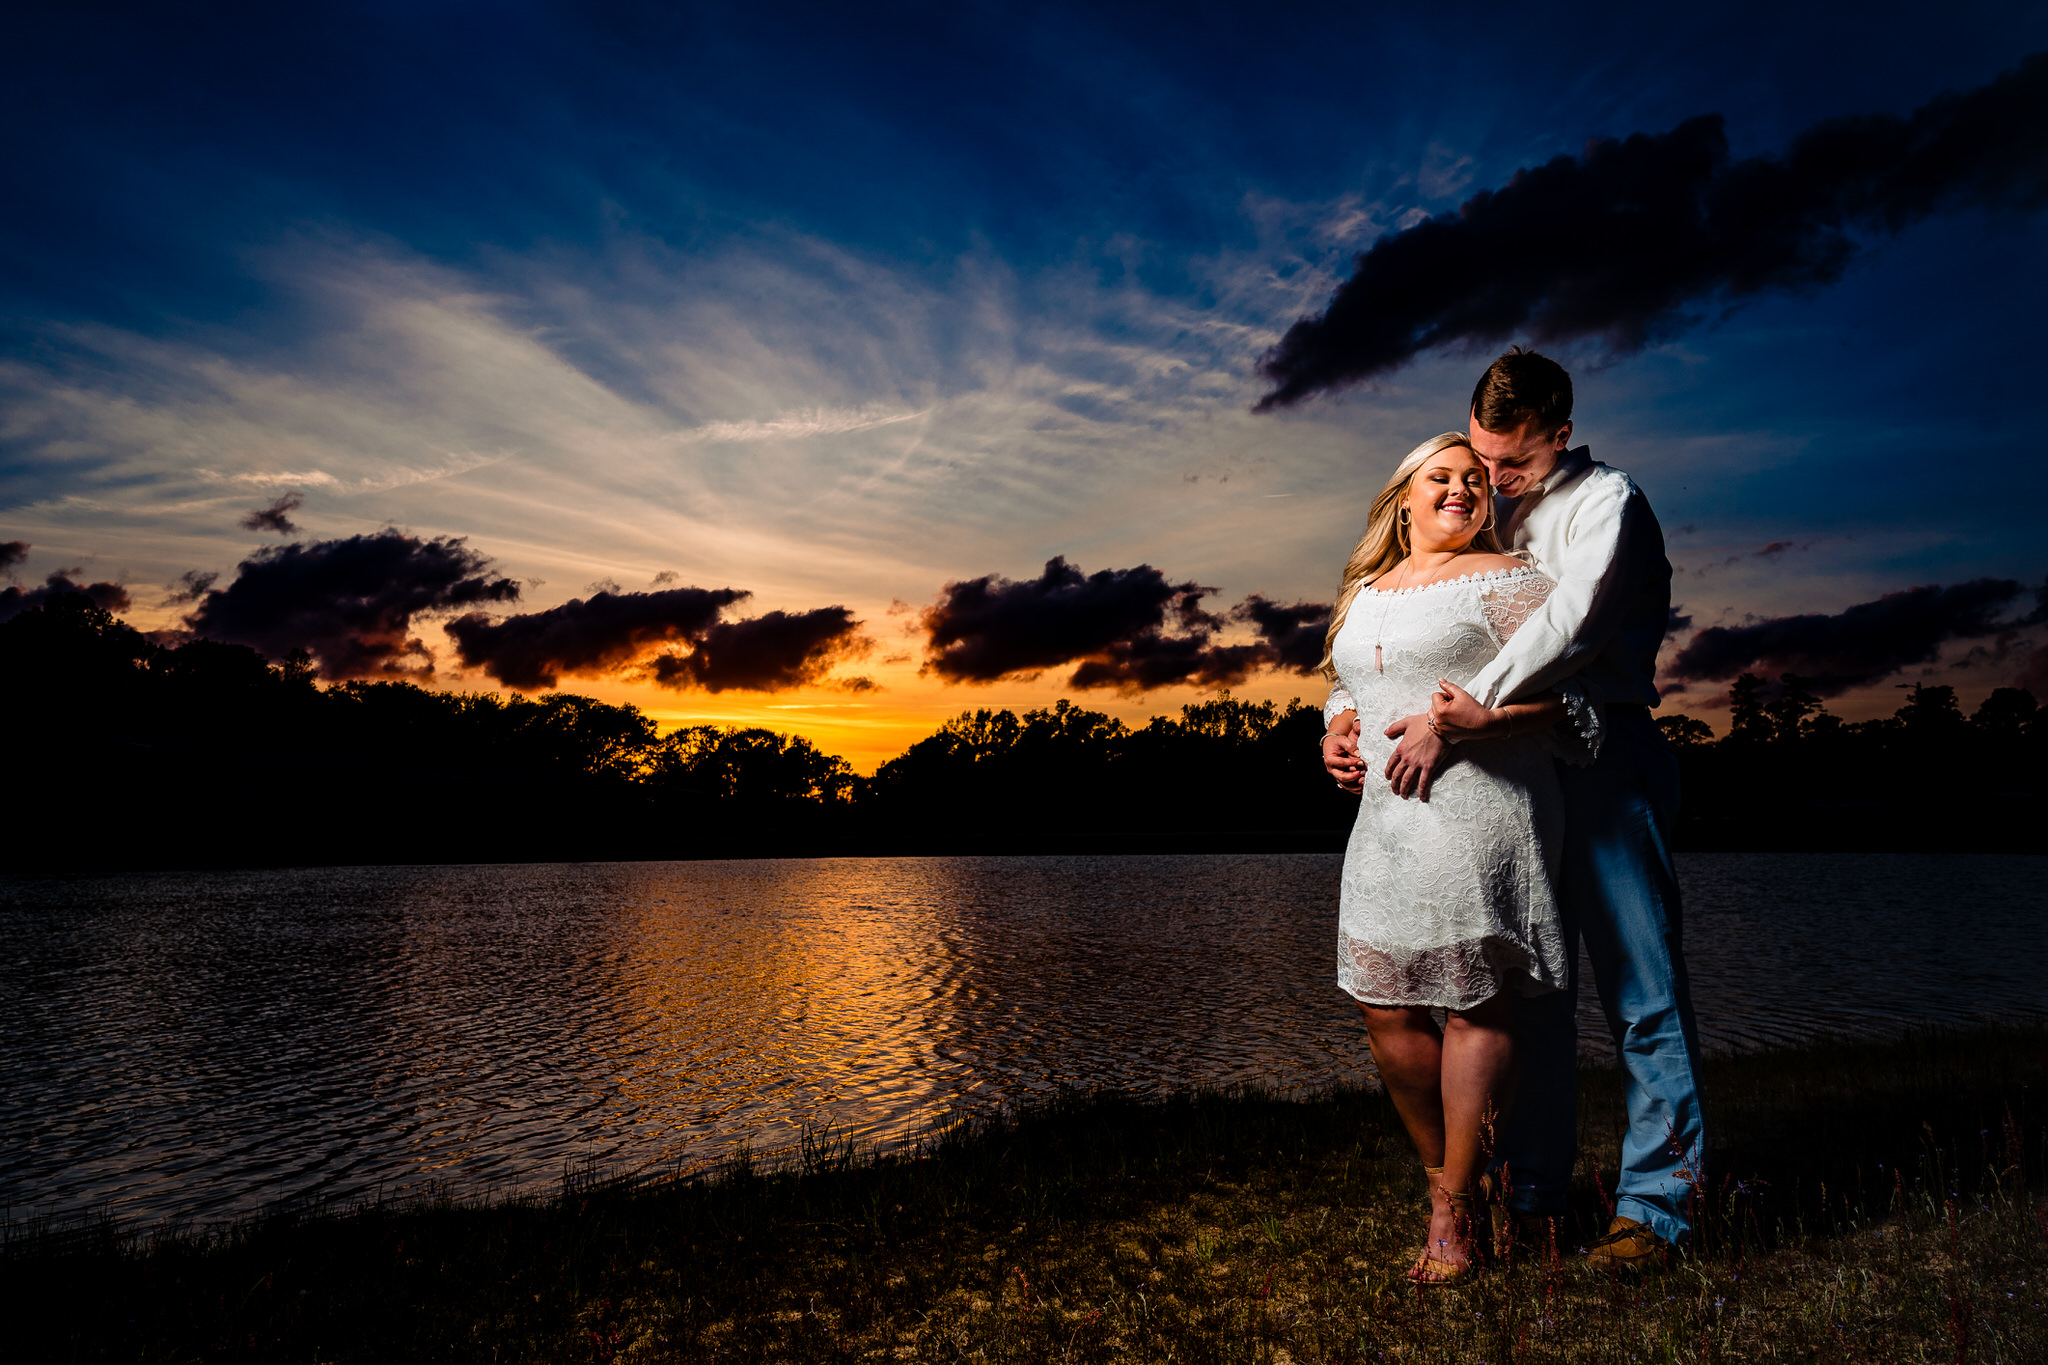 Nikki&Logan-Engagement-Cottonwood-Farm14.jpg